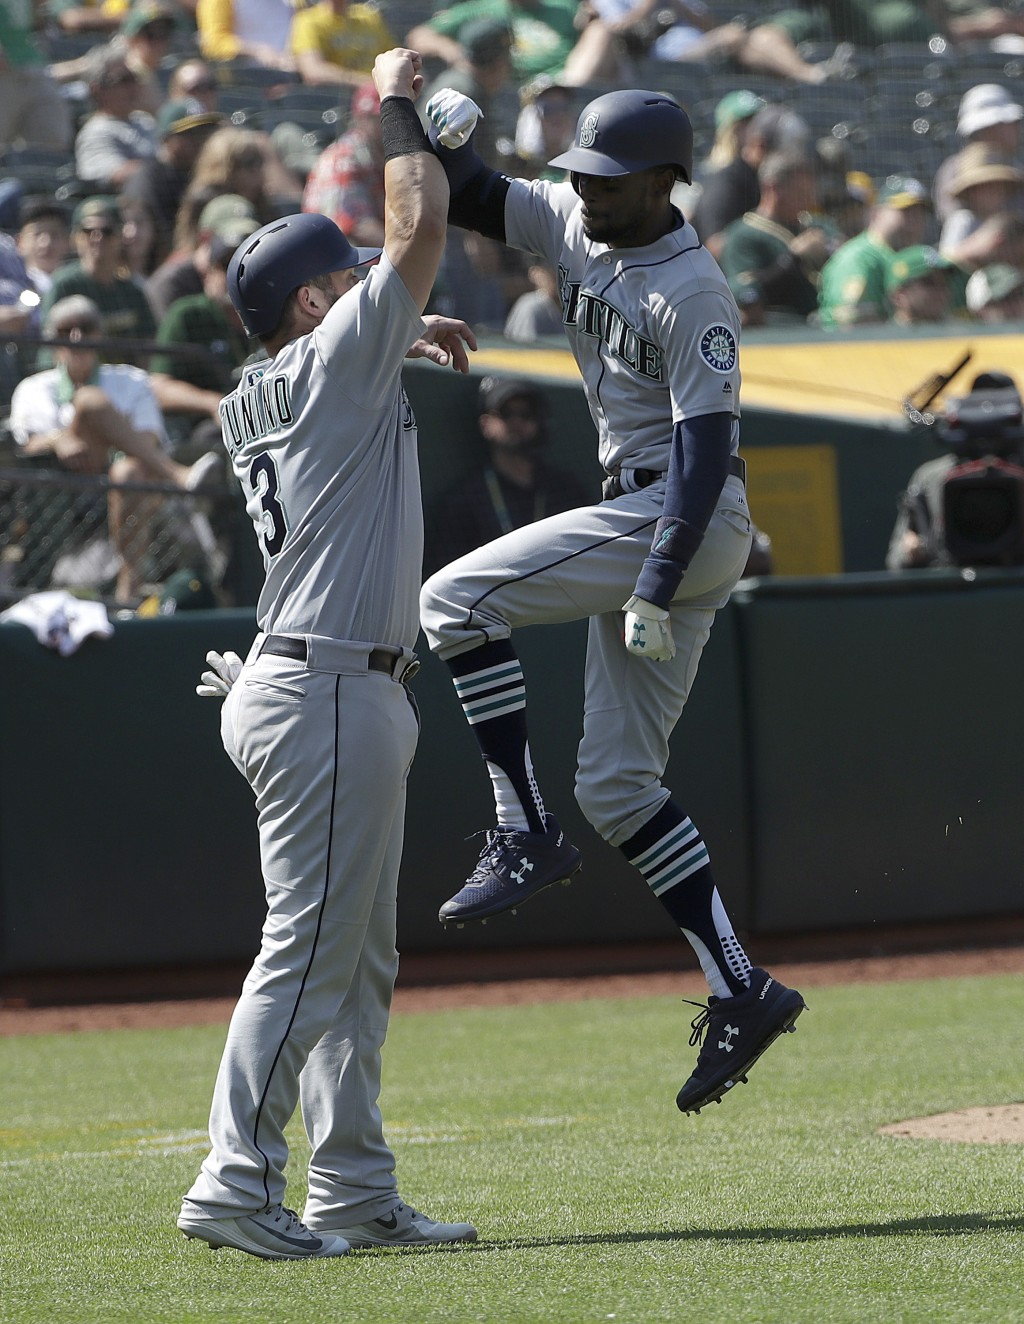 Seattle Mariners' Dee Gordon, right, celebrates after hitting a two-run home run that scored Mike Zunino, left, against the Oakland Athletics during t...